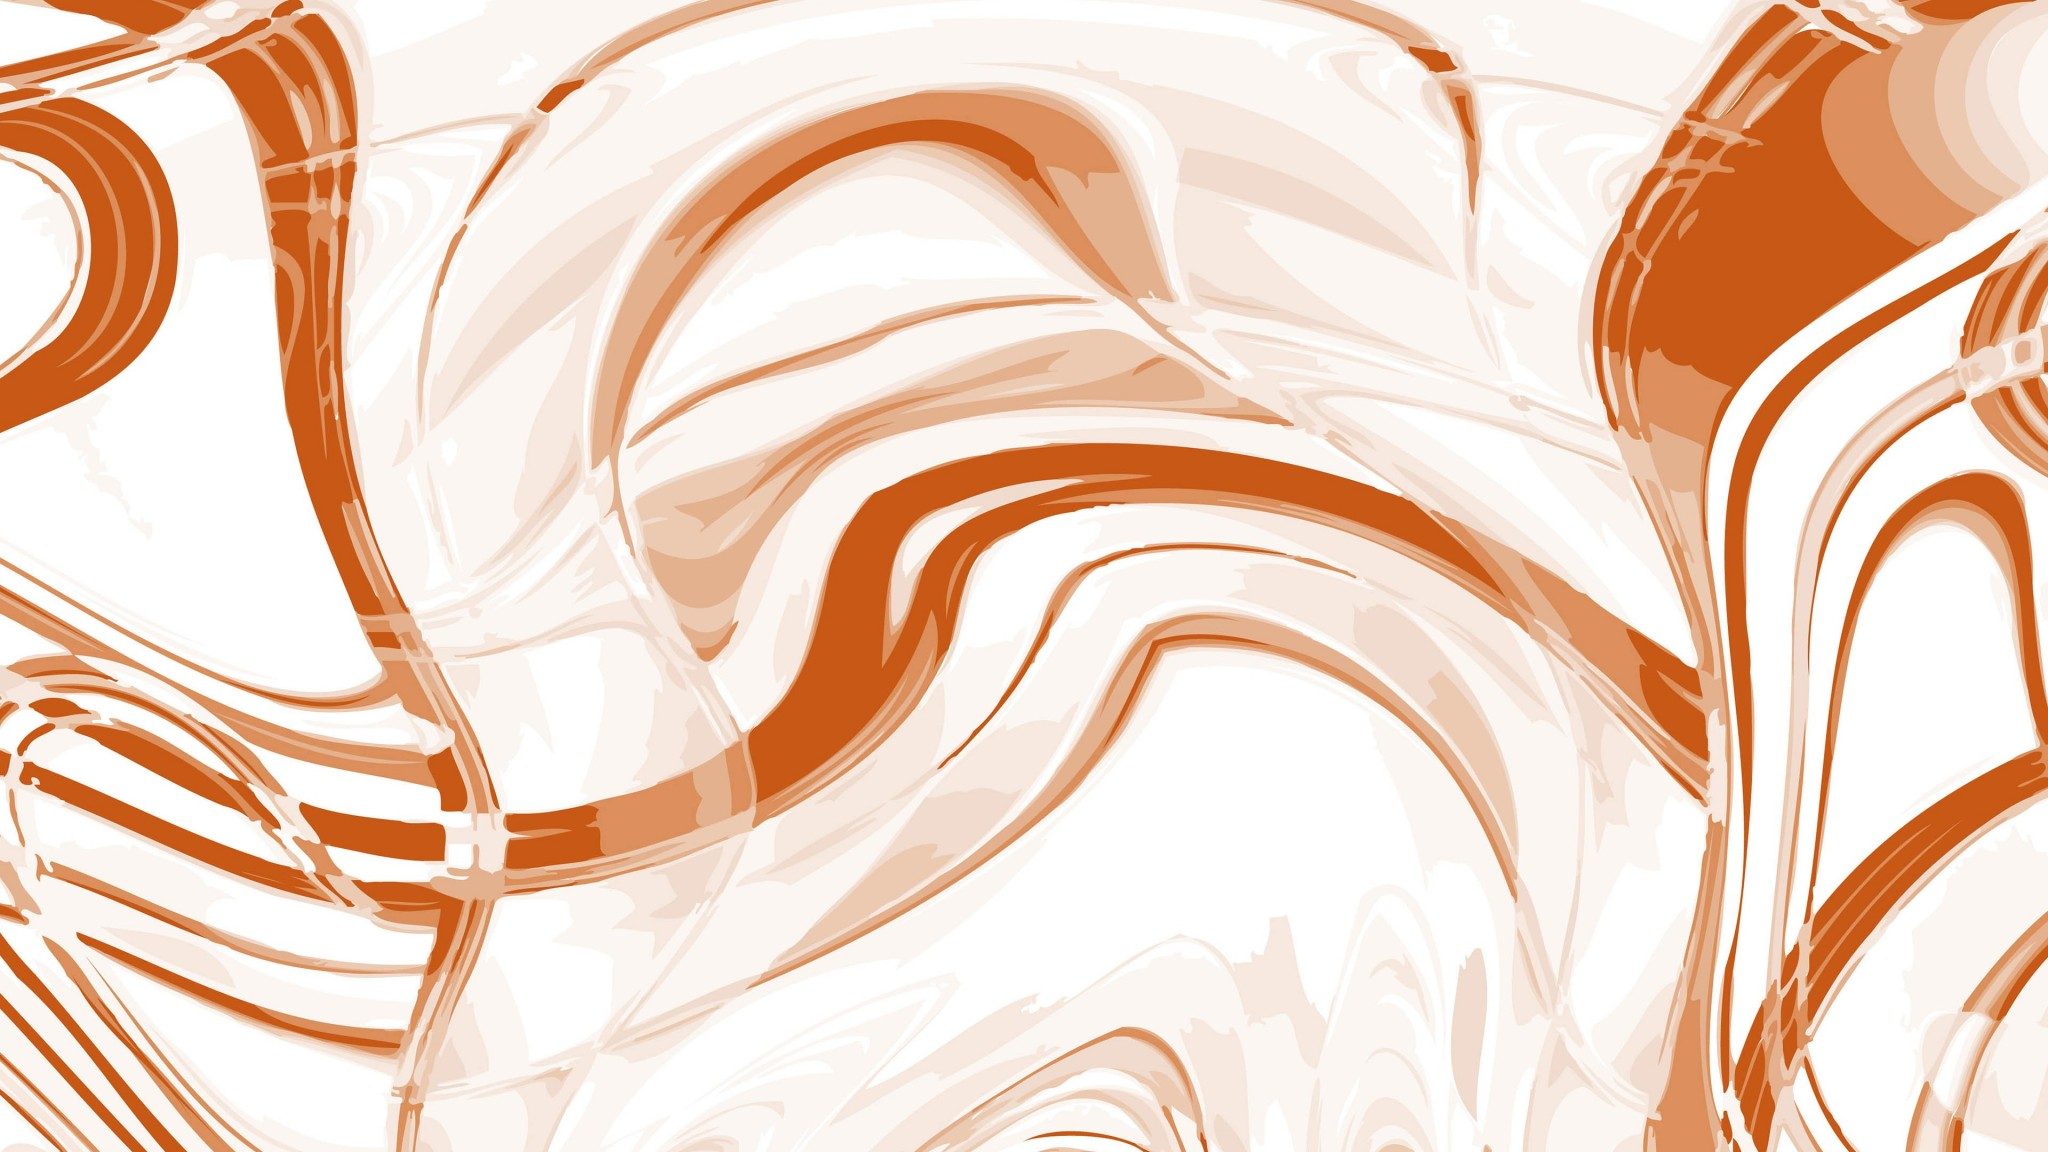 Black and white wallpapers grey abstract wallpaper html code - Orange And White Wallpaper Wallpapersafari